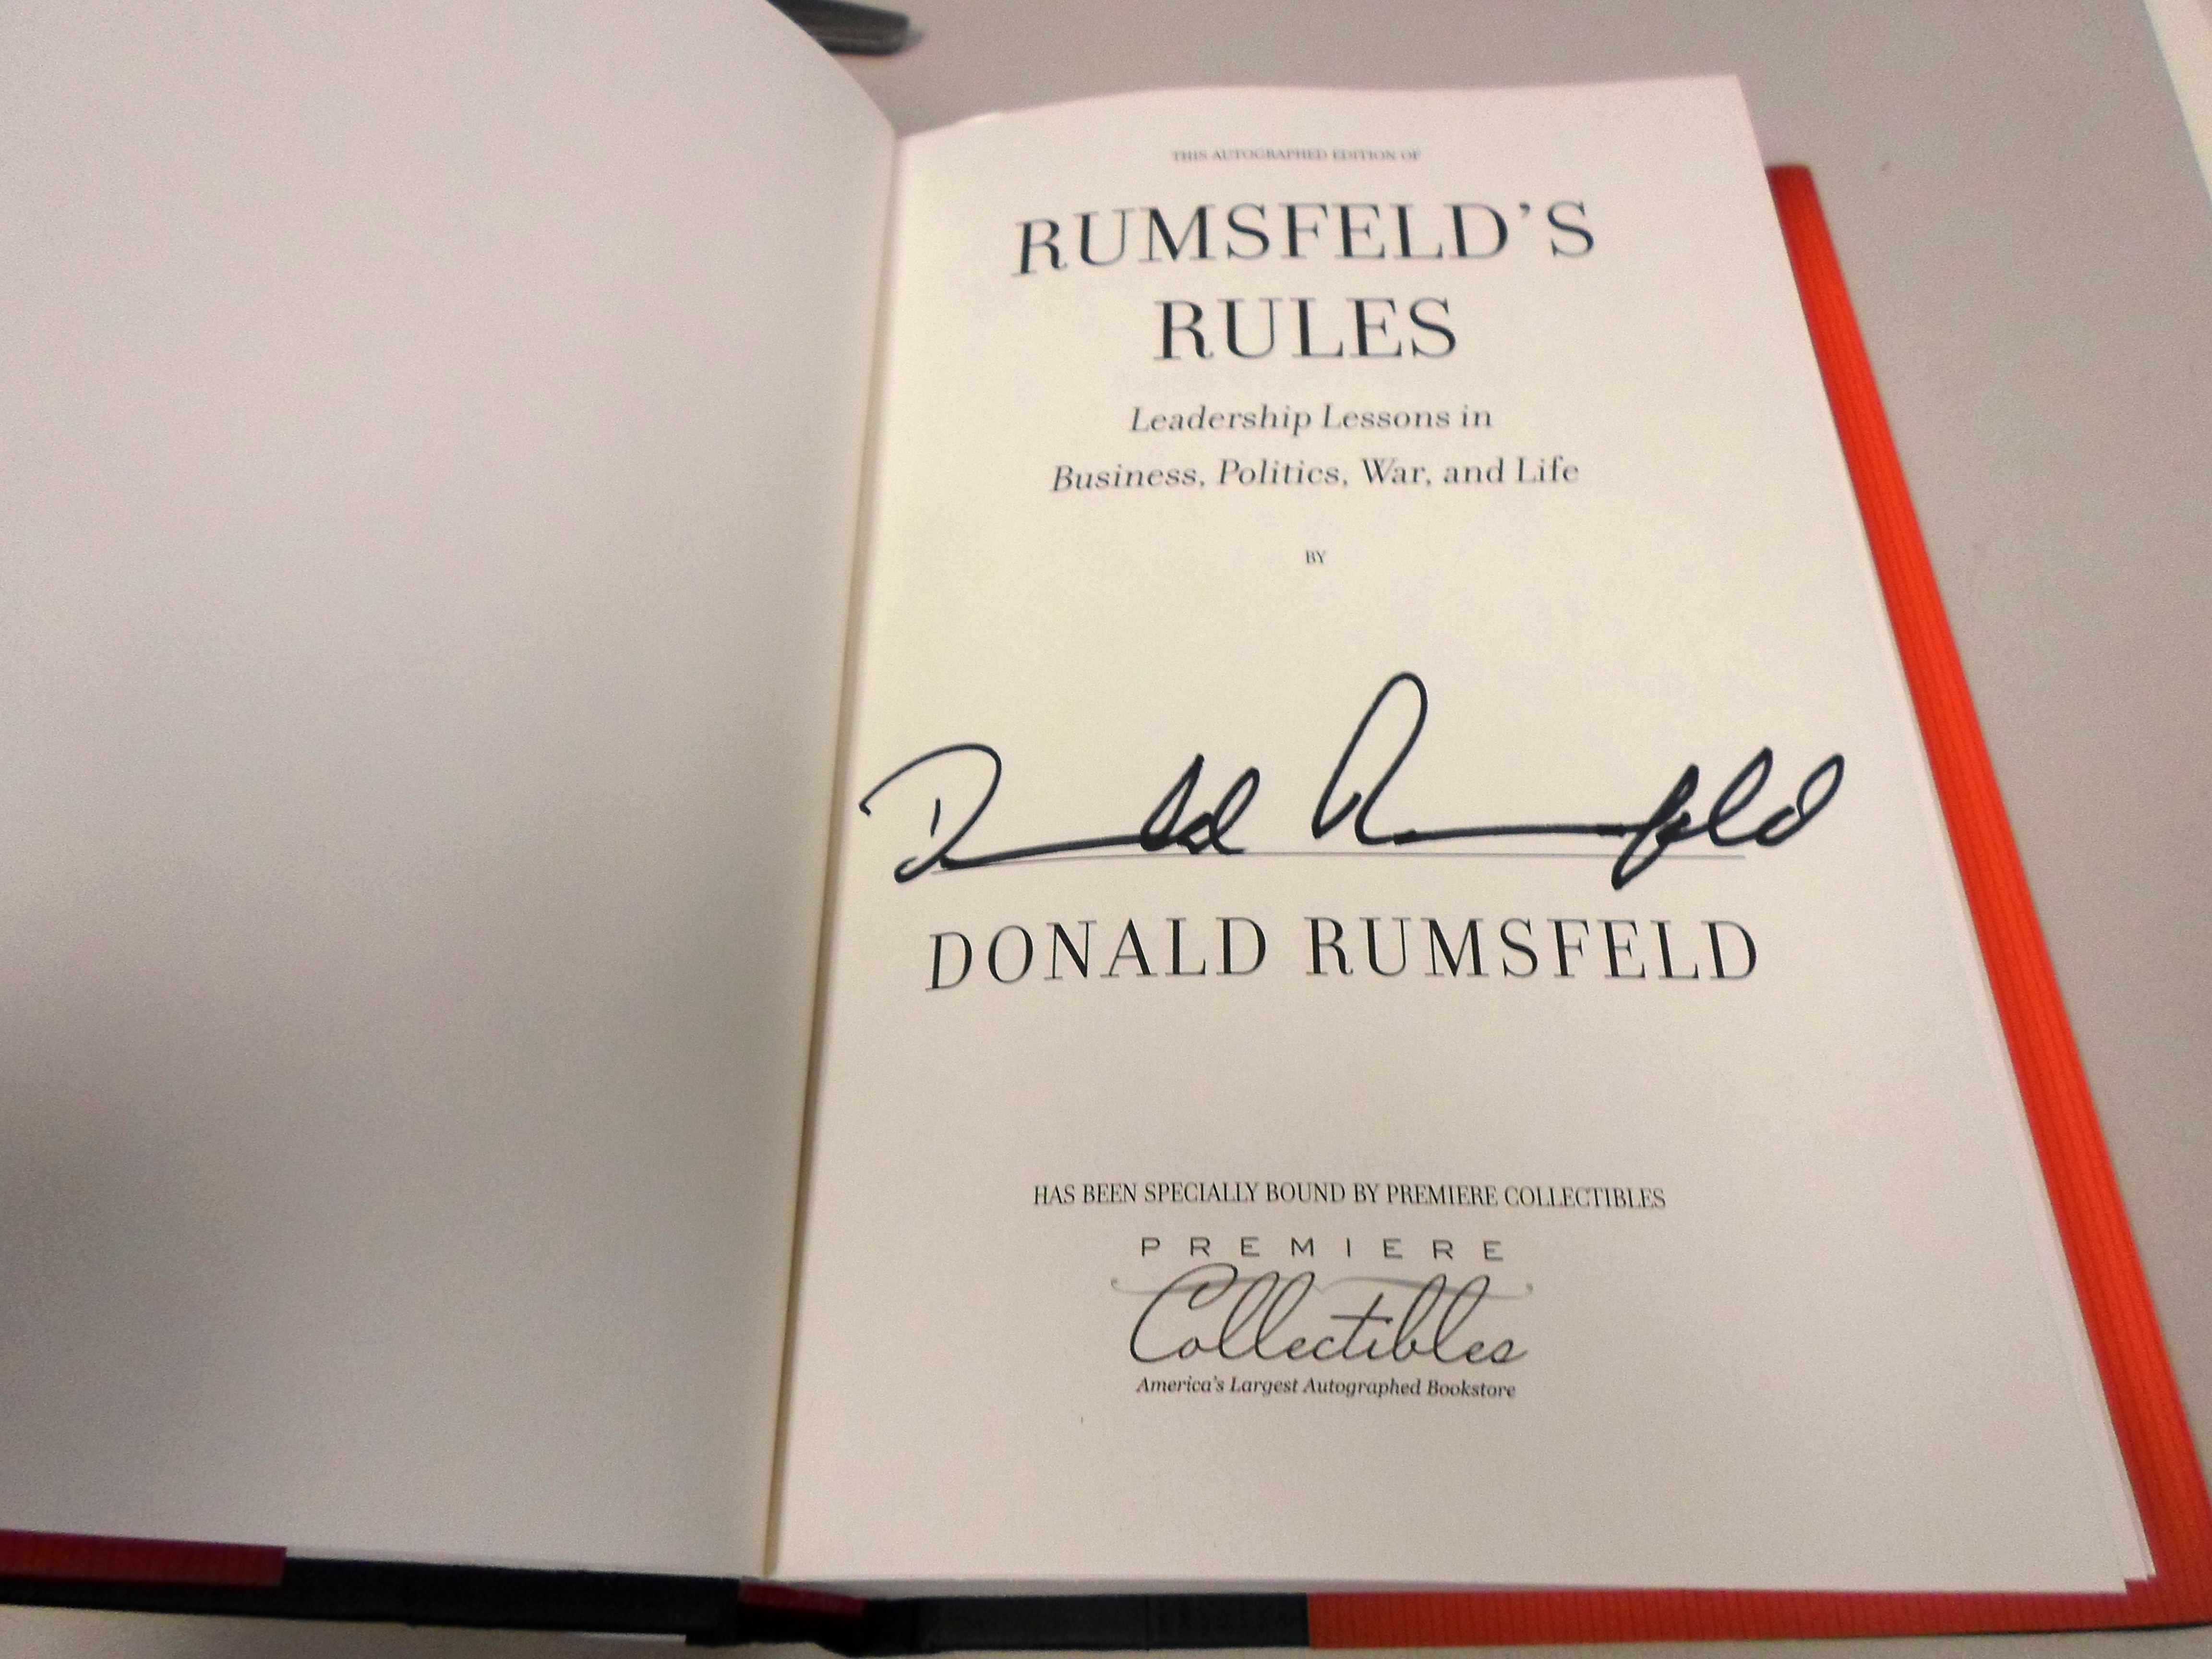 Rumsfeld S Rules Premiere Collectibles